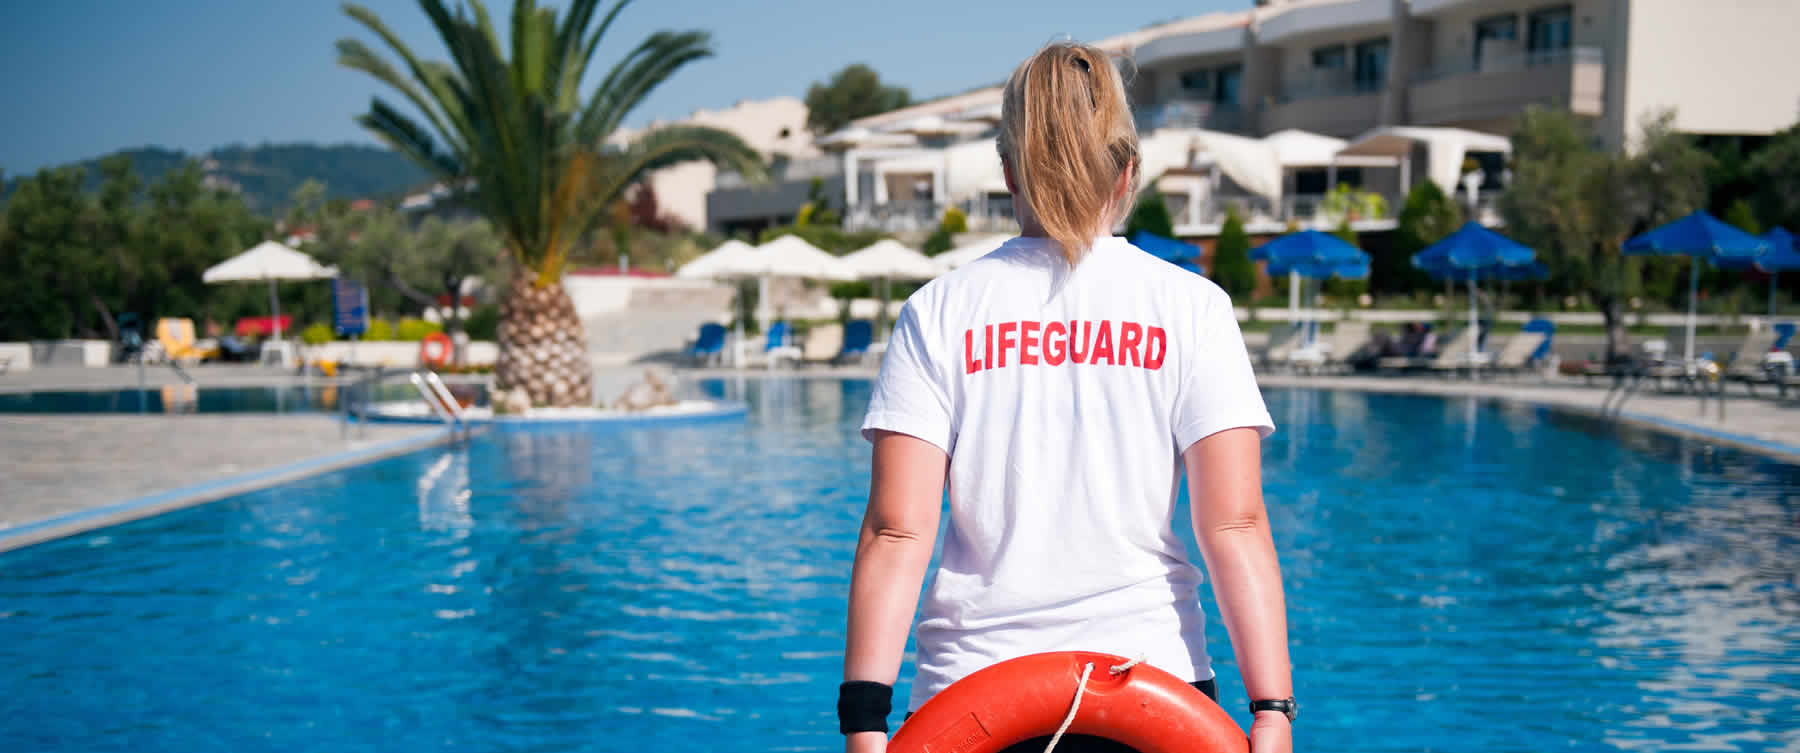 Get a lifeguard station from H2O Innovations that is portable.